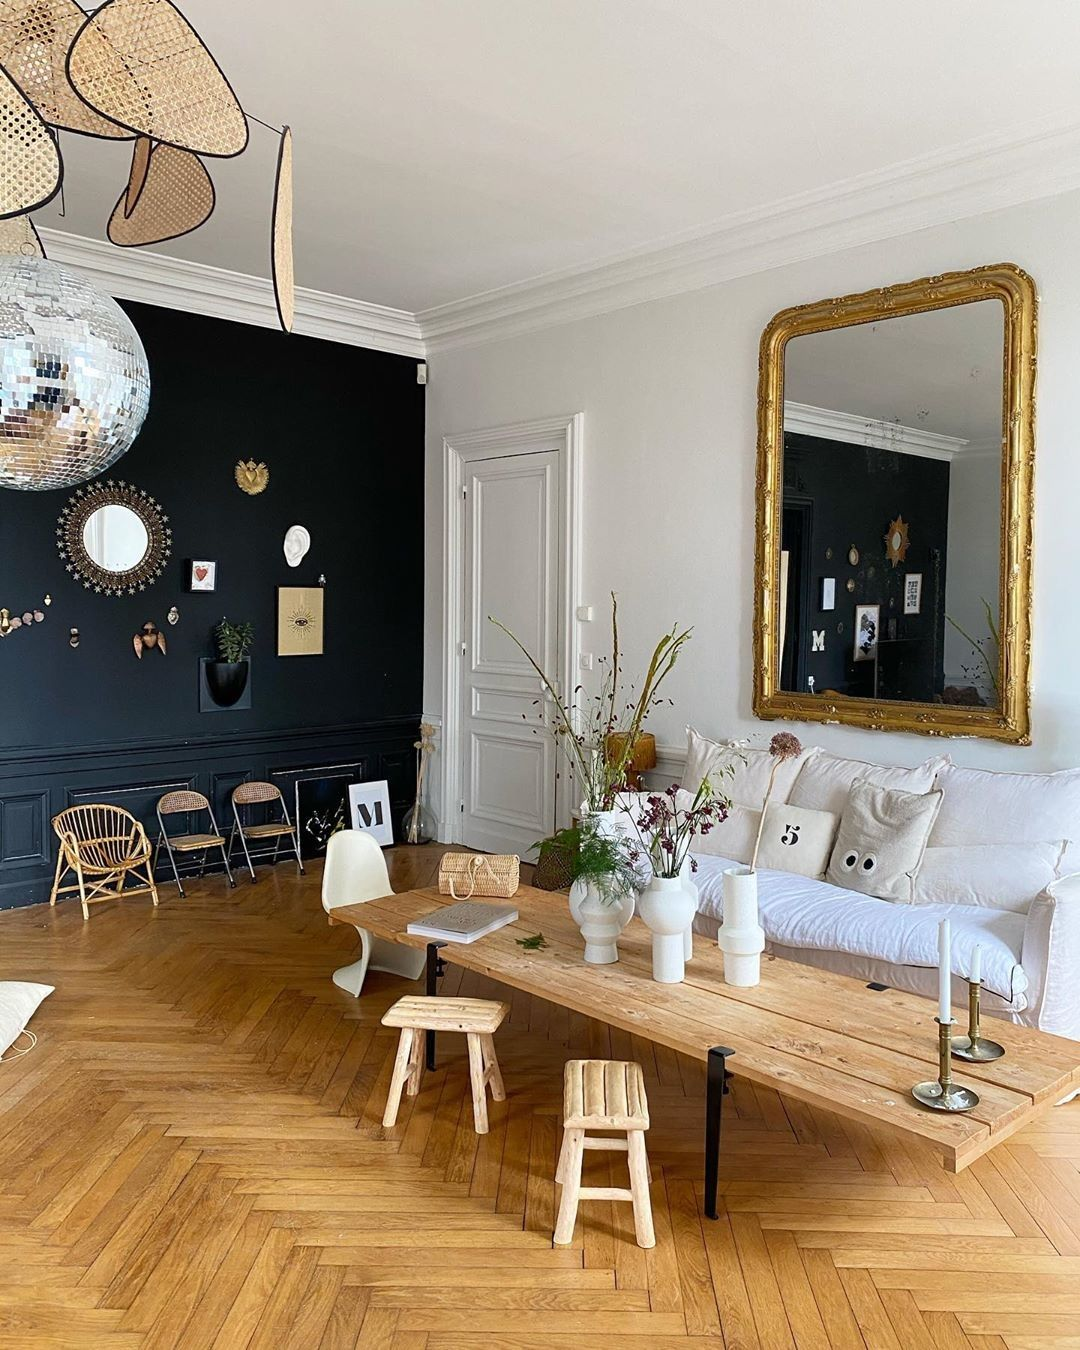 Pin By Polkadoter On Living Room In 2020 Home Decor Furniture Decor #oversized #mirrors #for #living #room